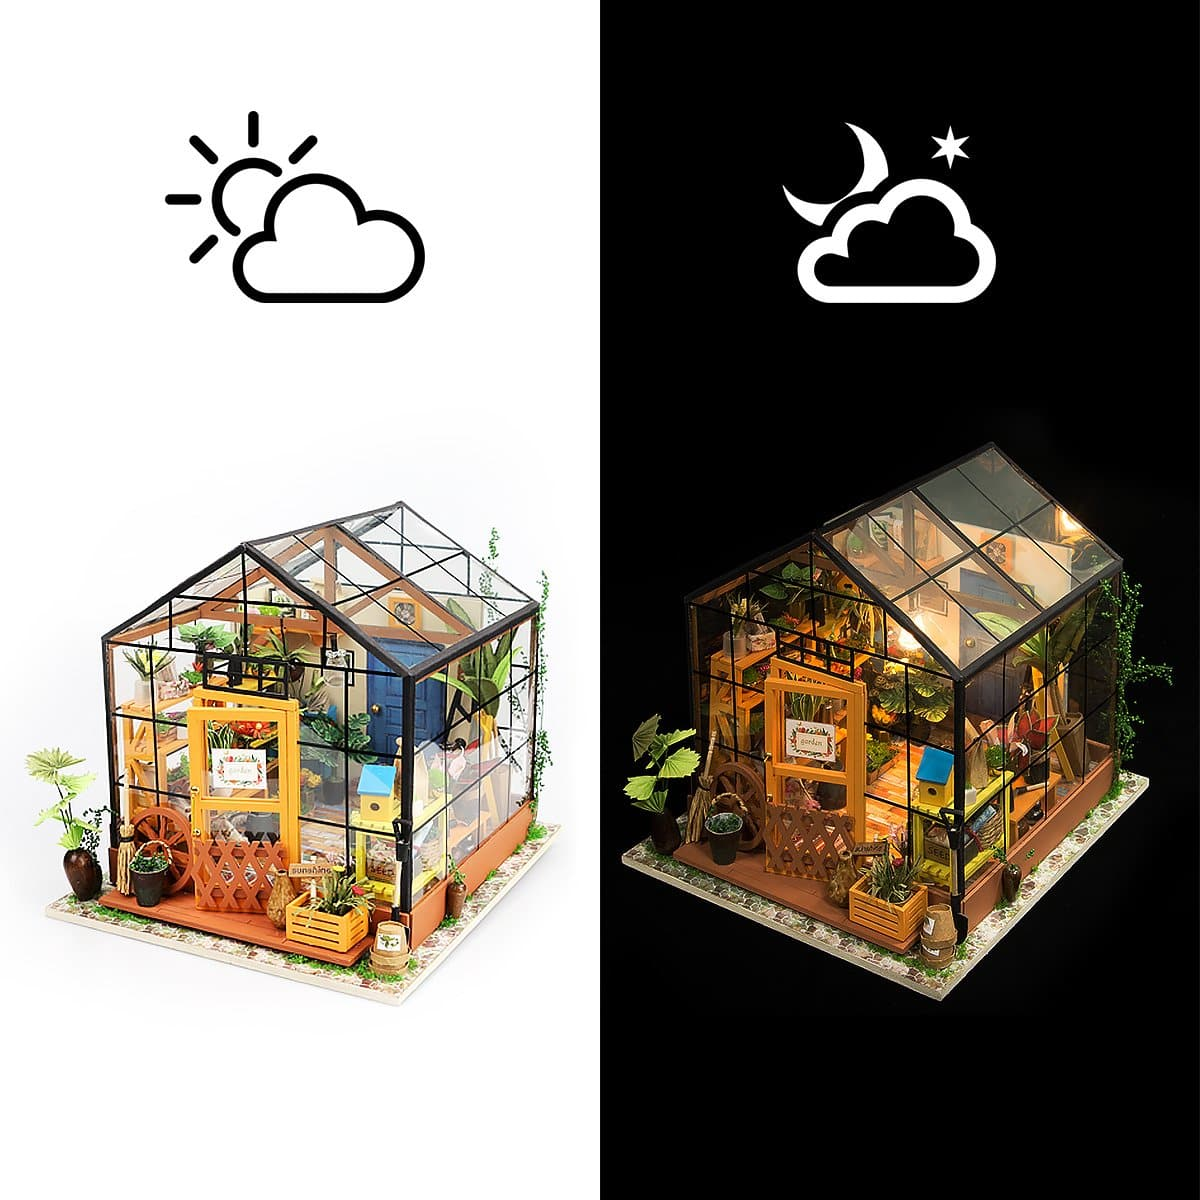 Robotime DIY Dollhouse Wooden Mini House Kit from $24.49 + Free Shipping